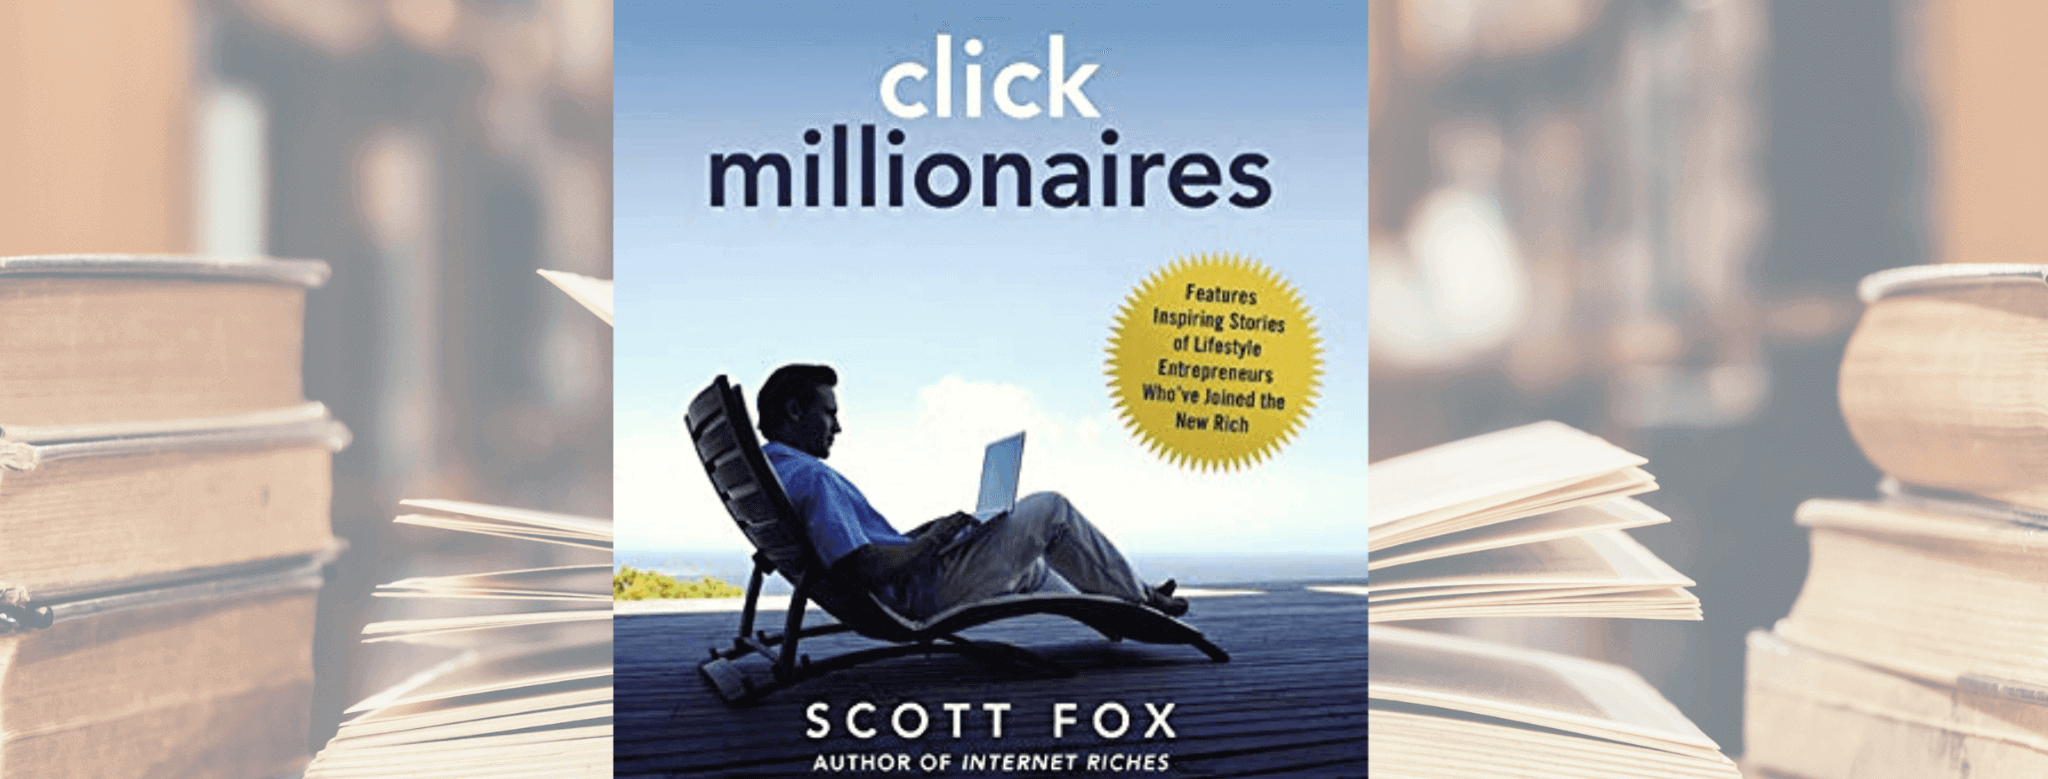 Click Millionaires by Scott Fox opengrowth